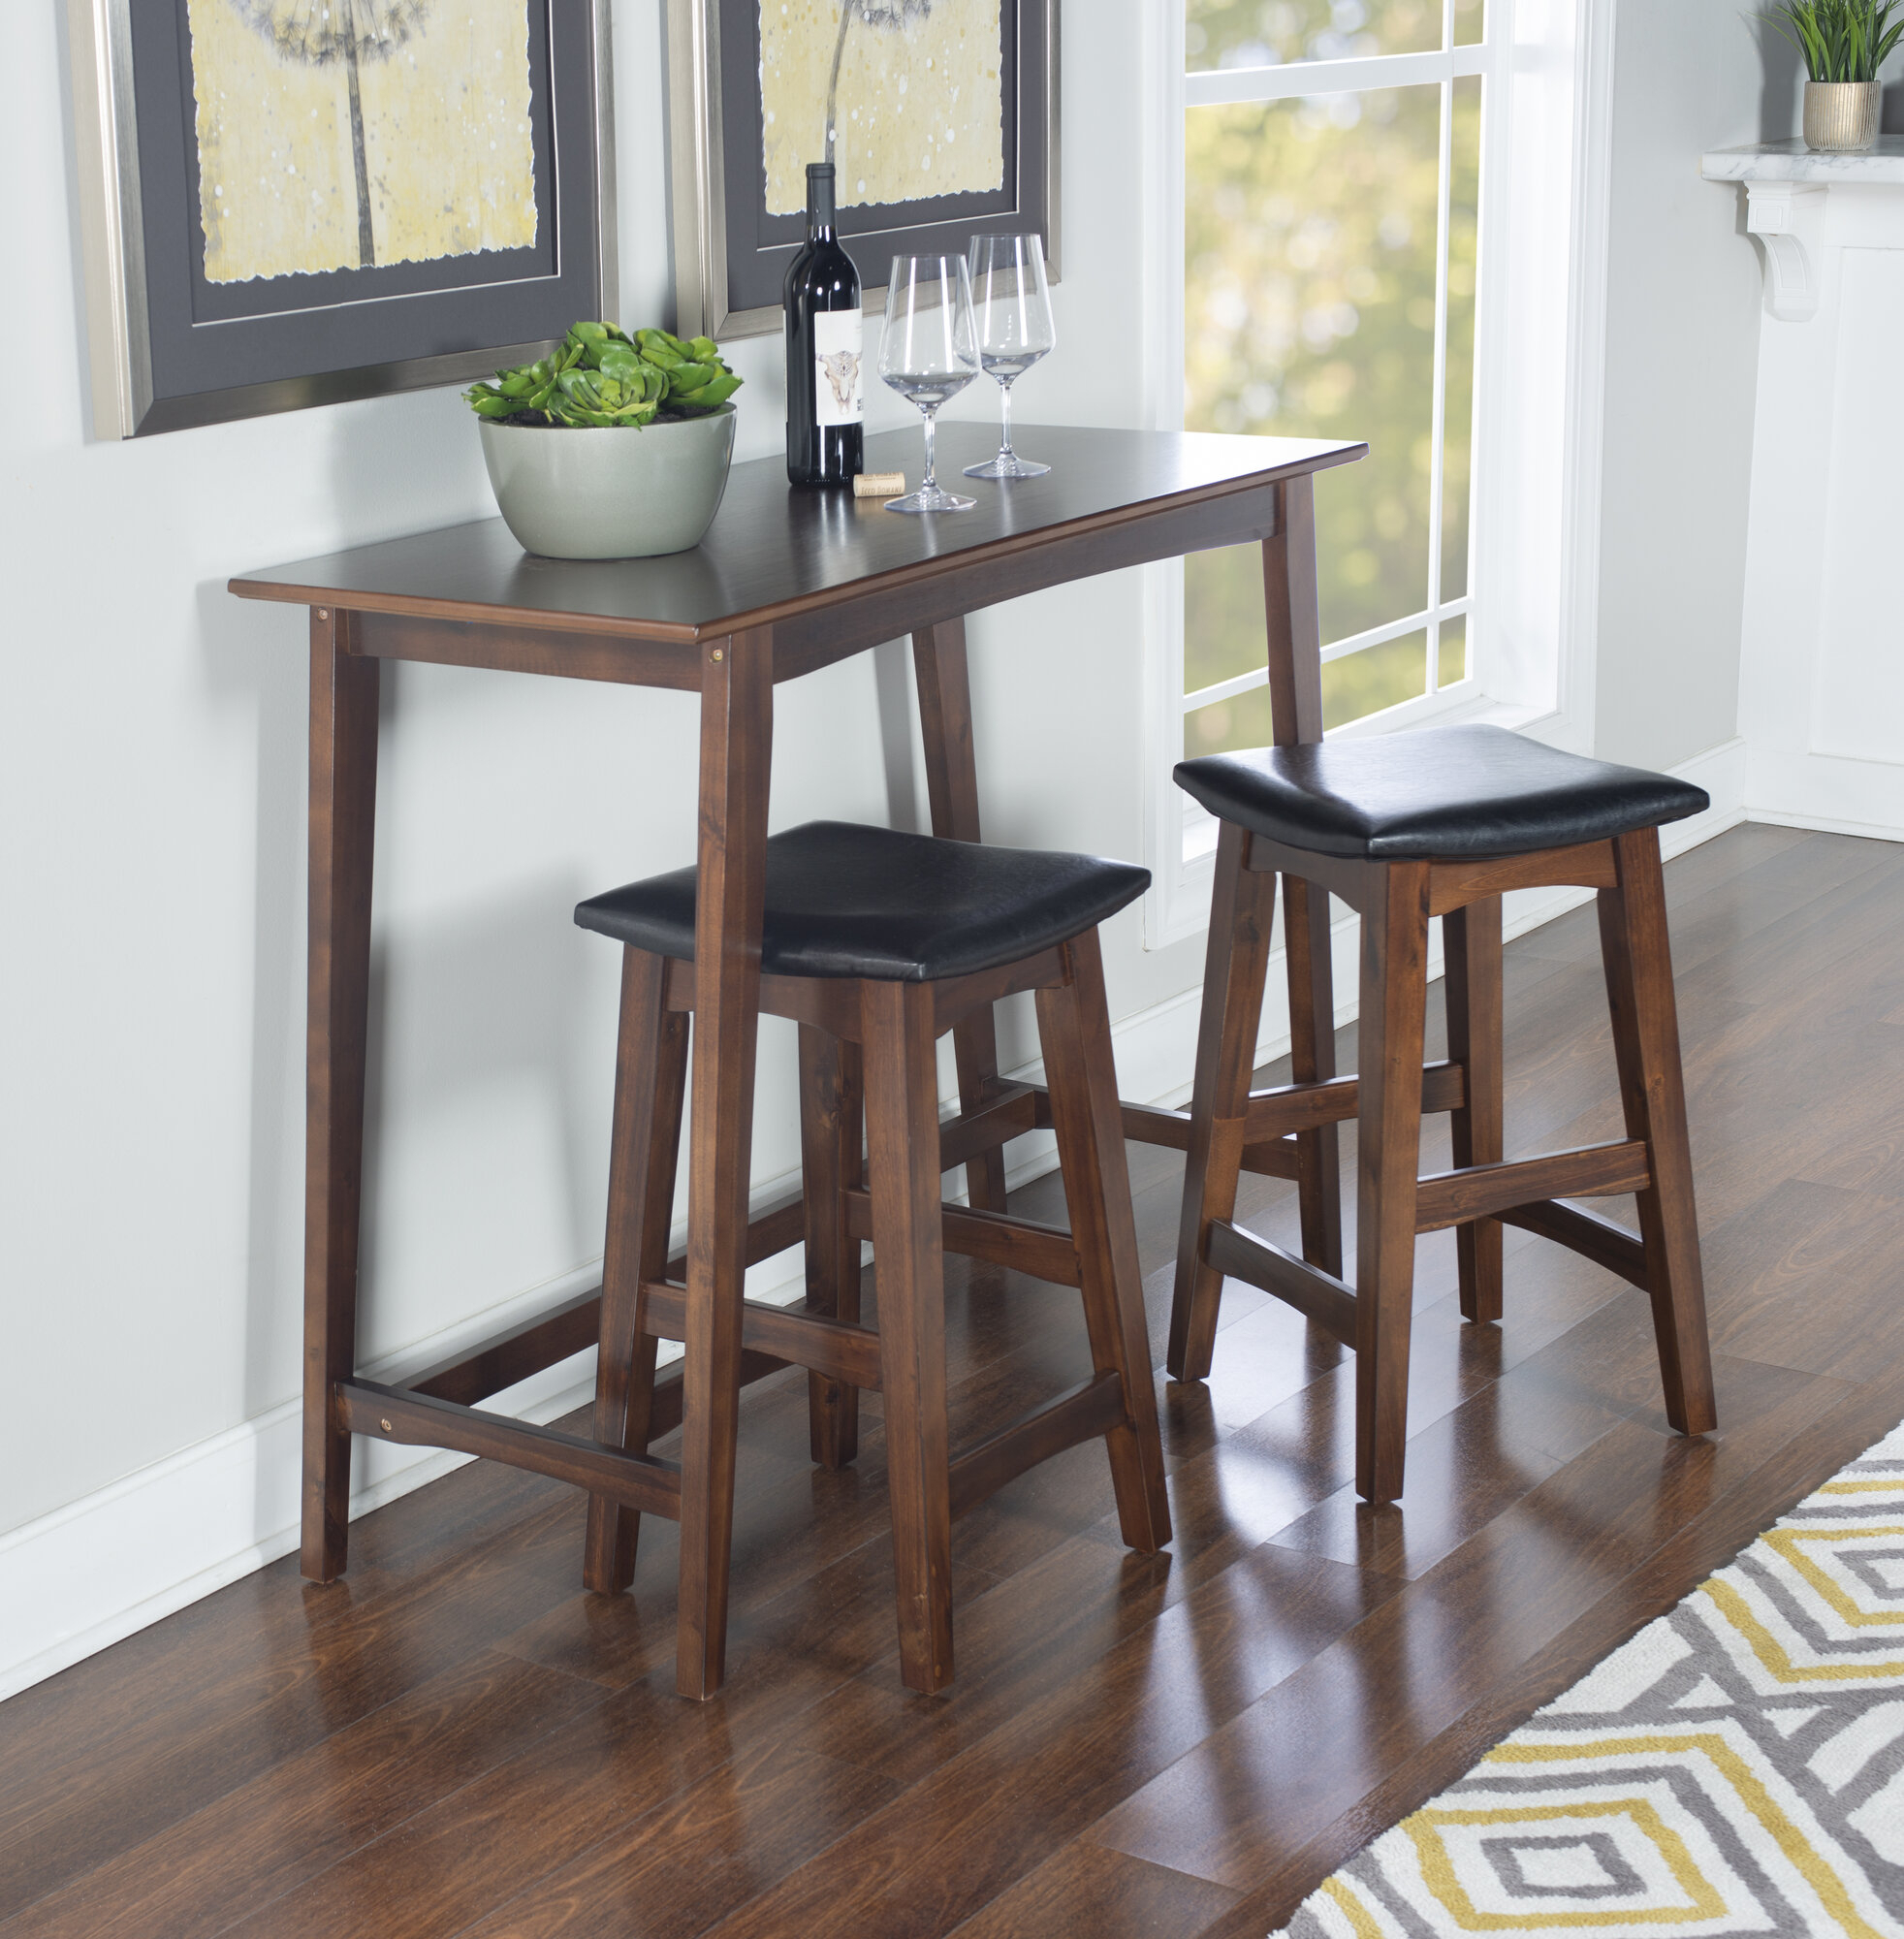 Details About Wrought Studio Lonon 3 Piece Dining Set Intended For Current Lonon 3 Piece Dining Sets (View 2 of 20)